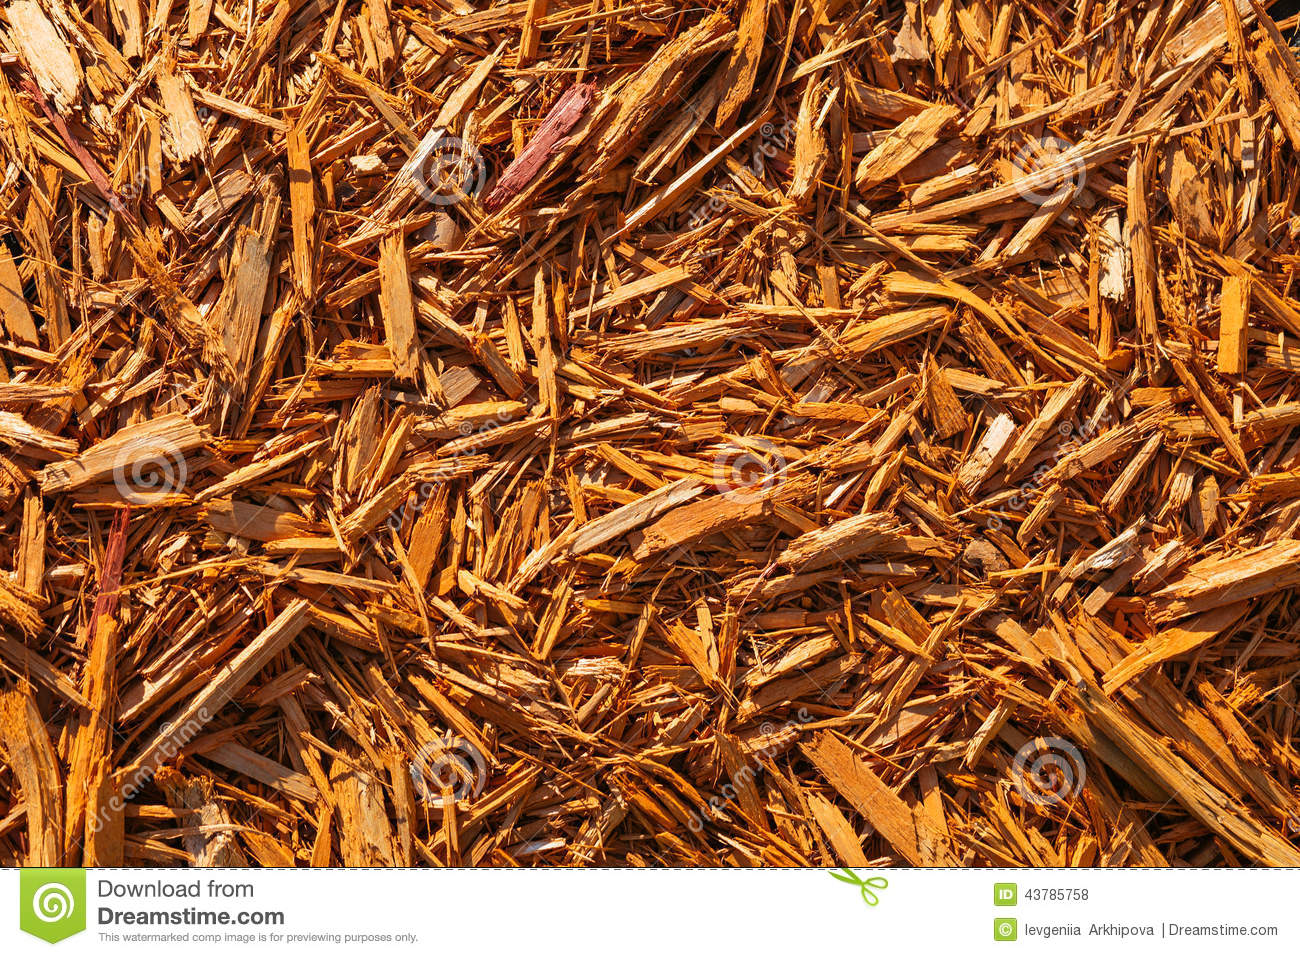 Biomass Wood Chips ~ Wood chips texture wooden biomass background royalty free